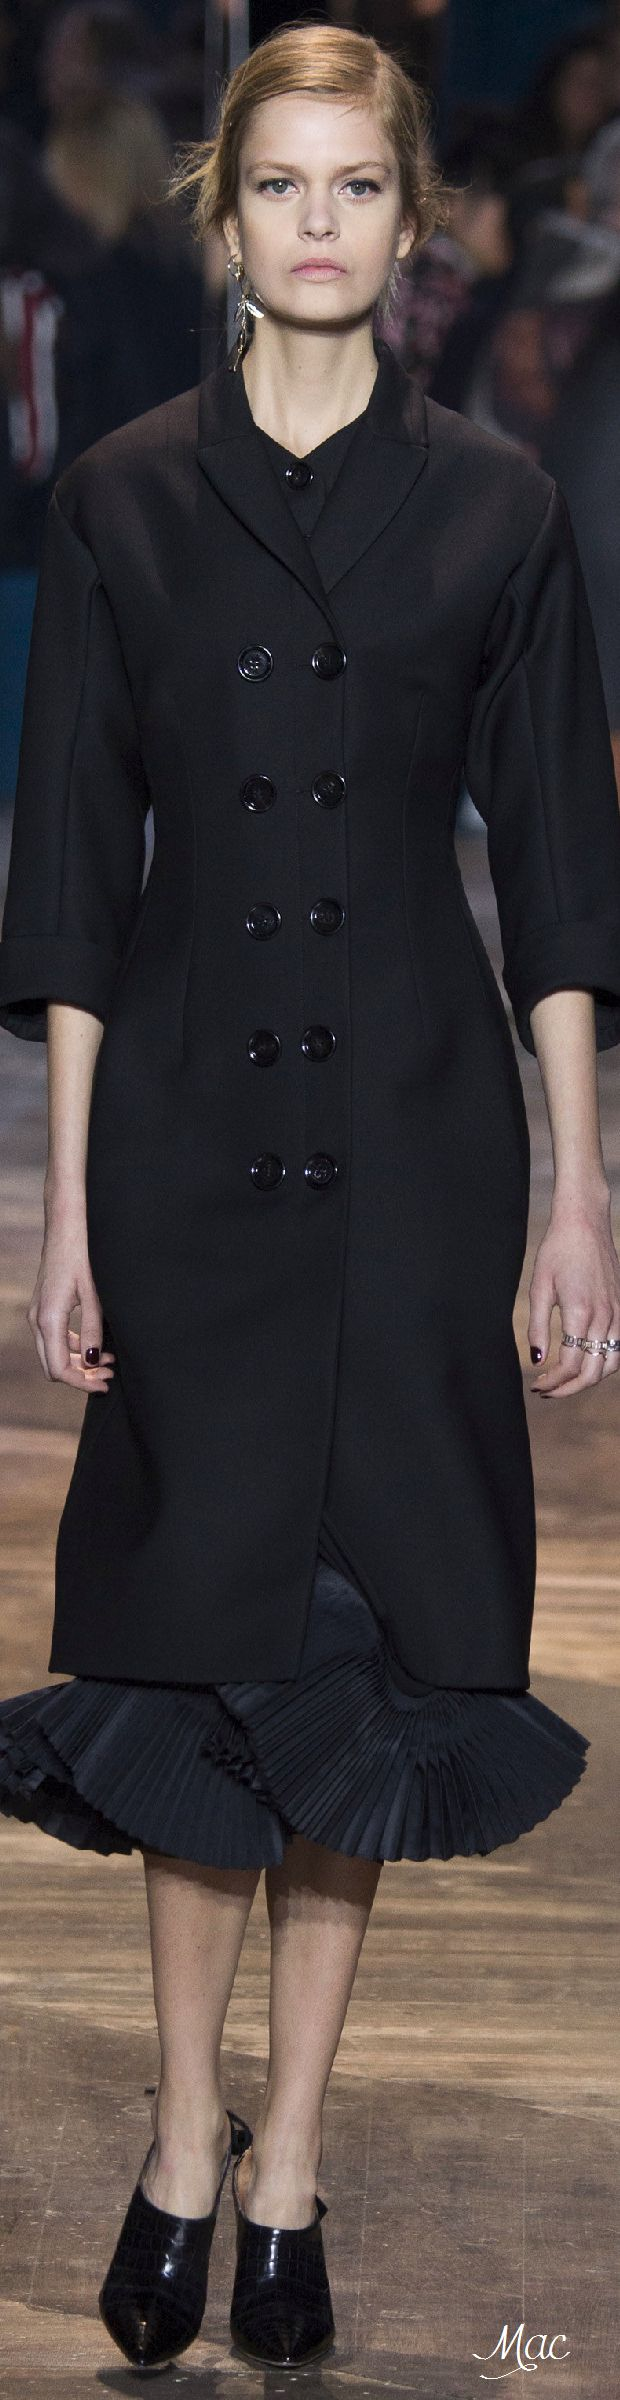 Spring 2016 Haute Couture Christian Dior                                                                                                                                                      More